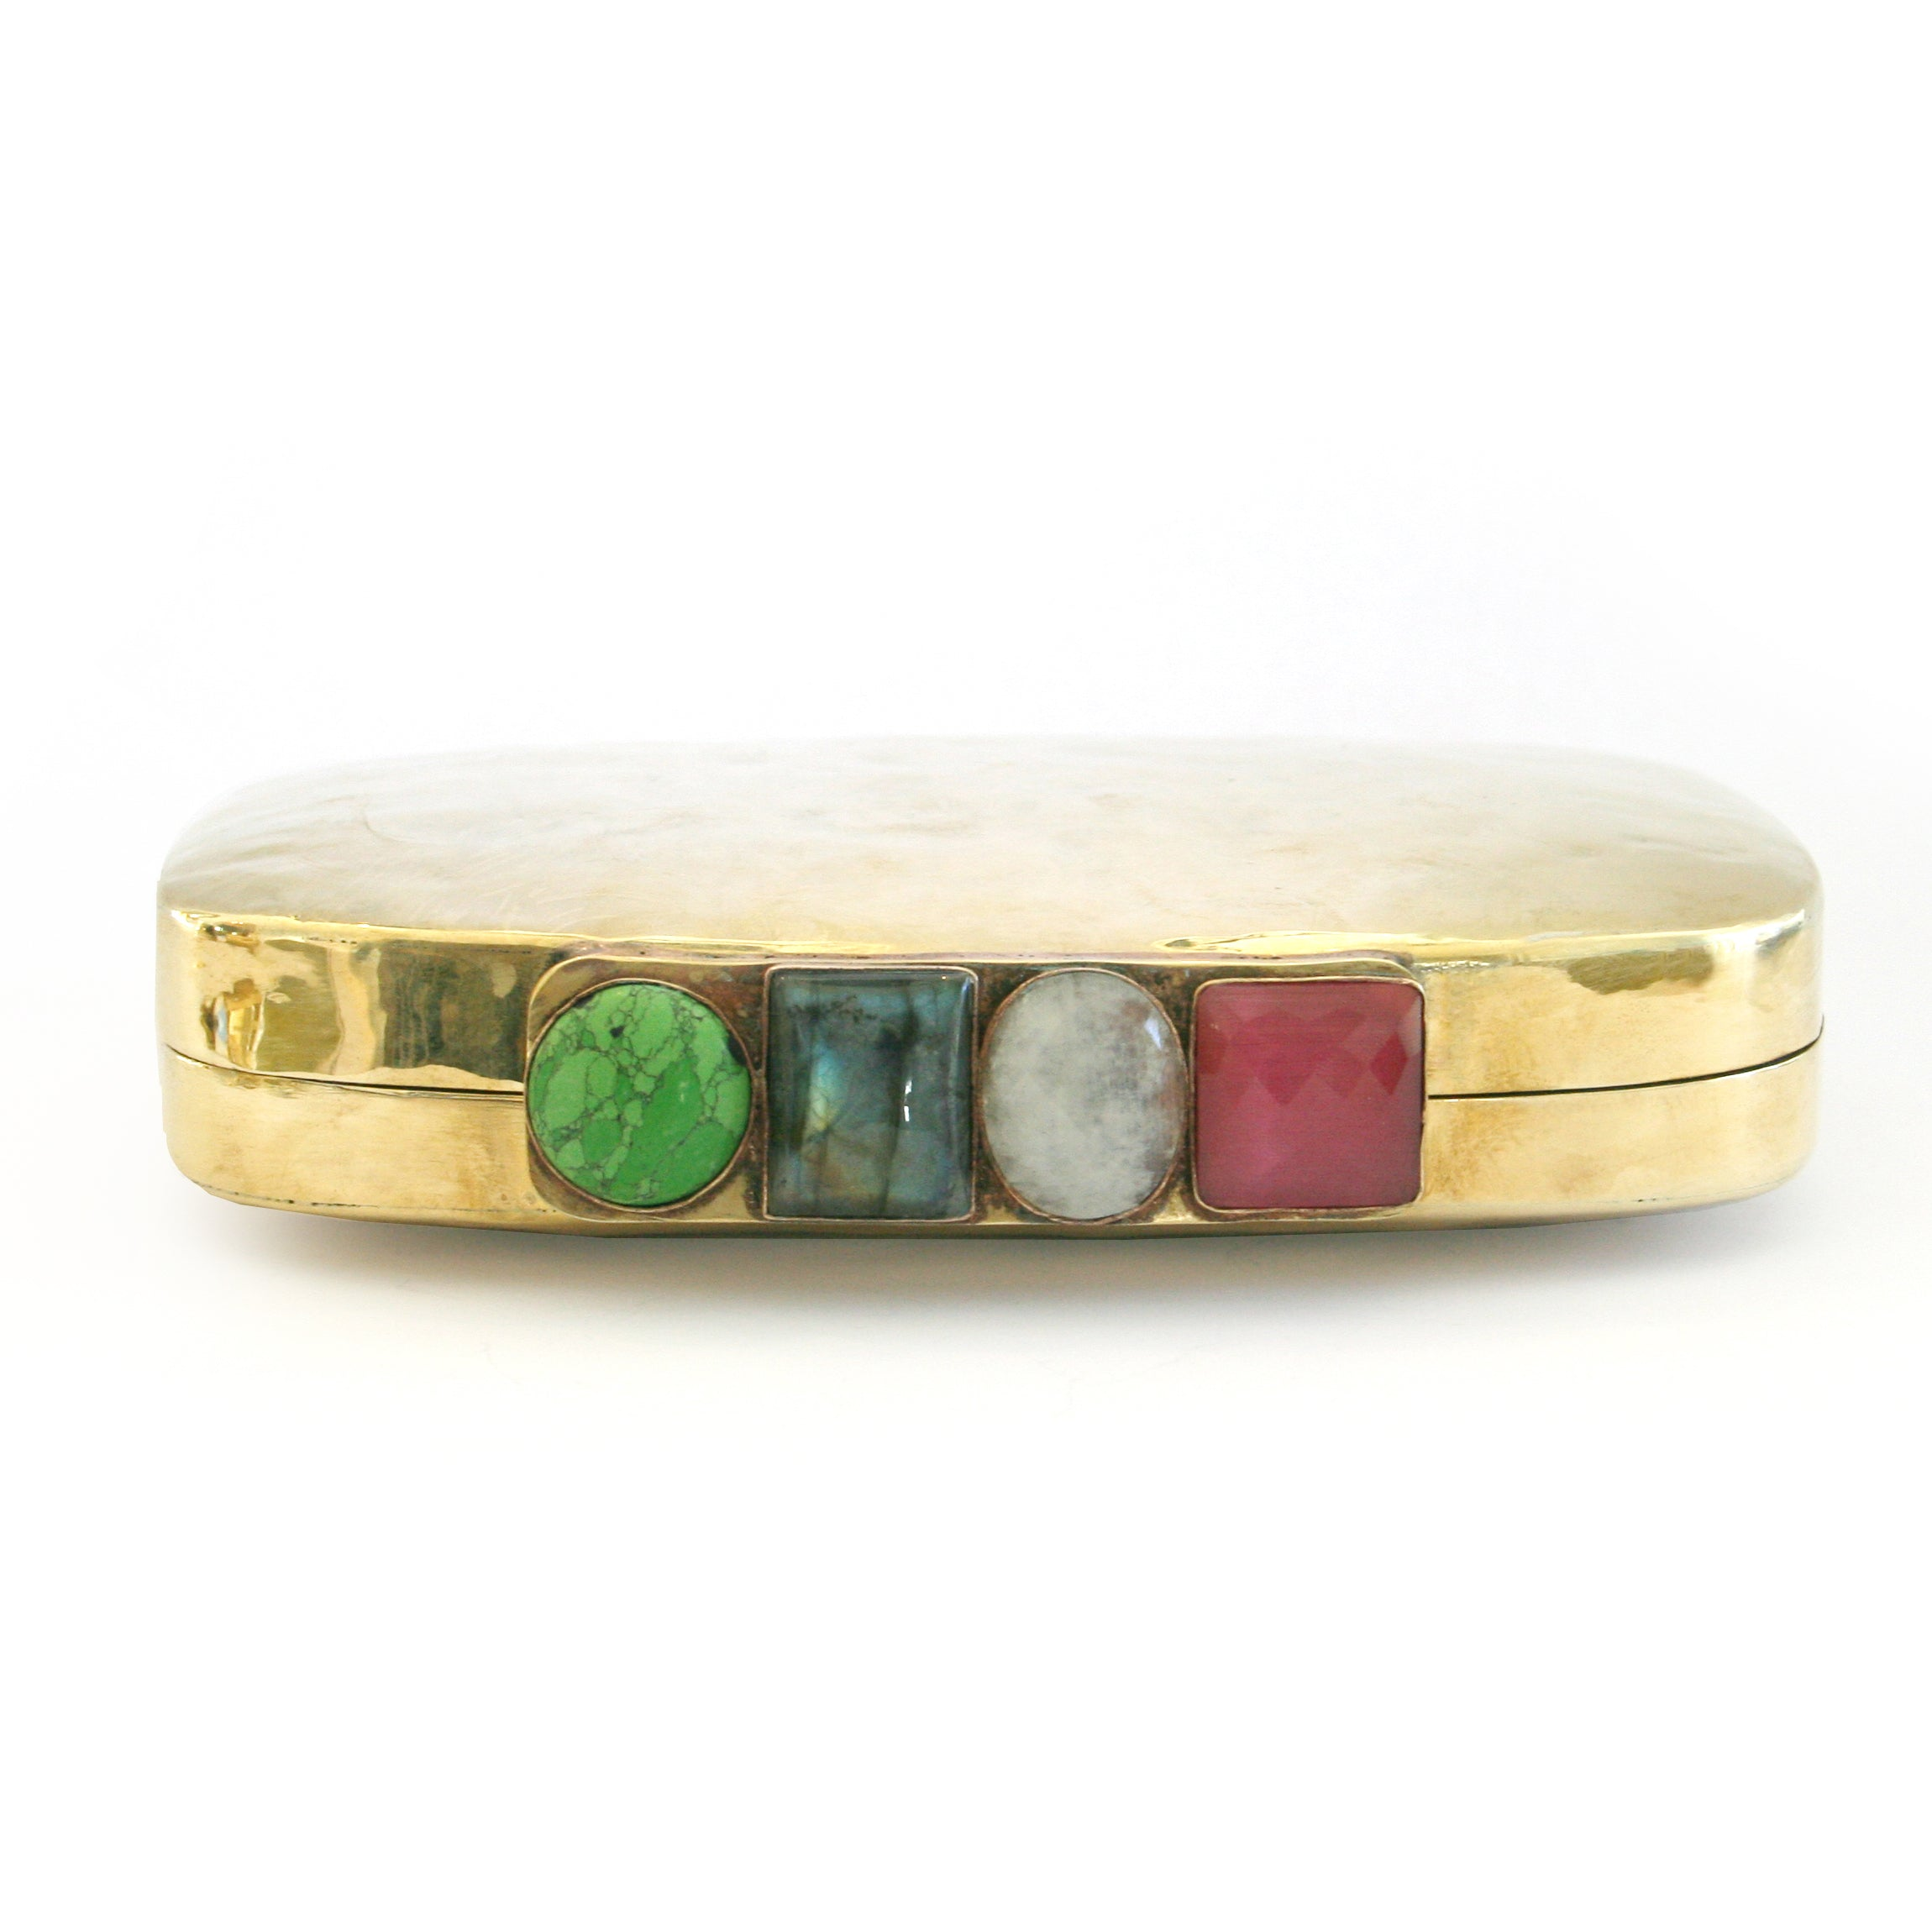 Jenkins Brass Clutch in Mutli Gemstones